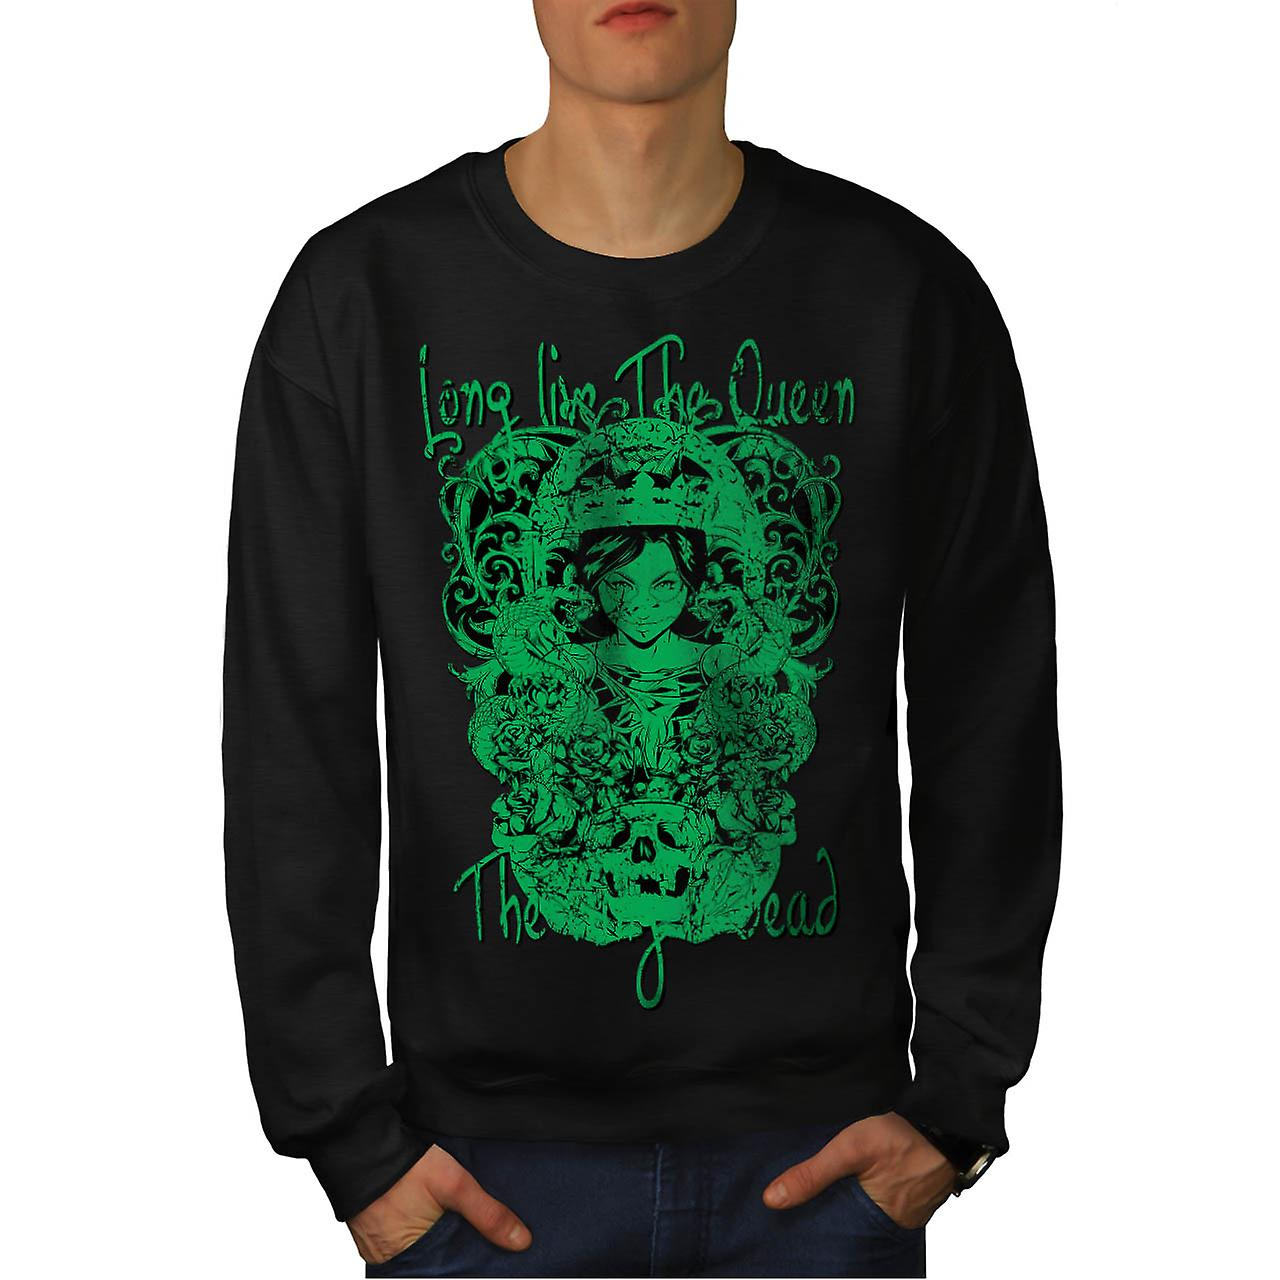 Long Live The Queen Evil Kingdom Men Black Sweatshirt | Wellcoda